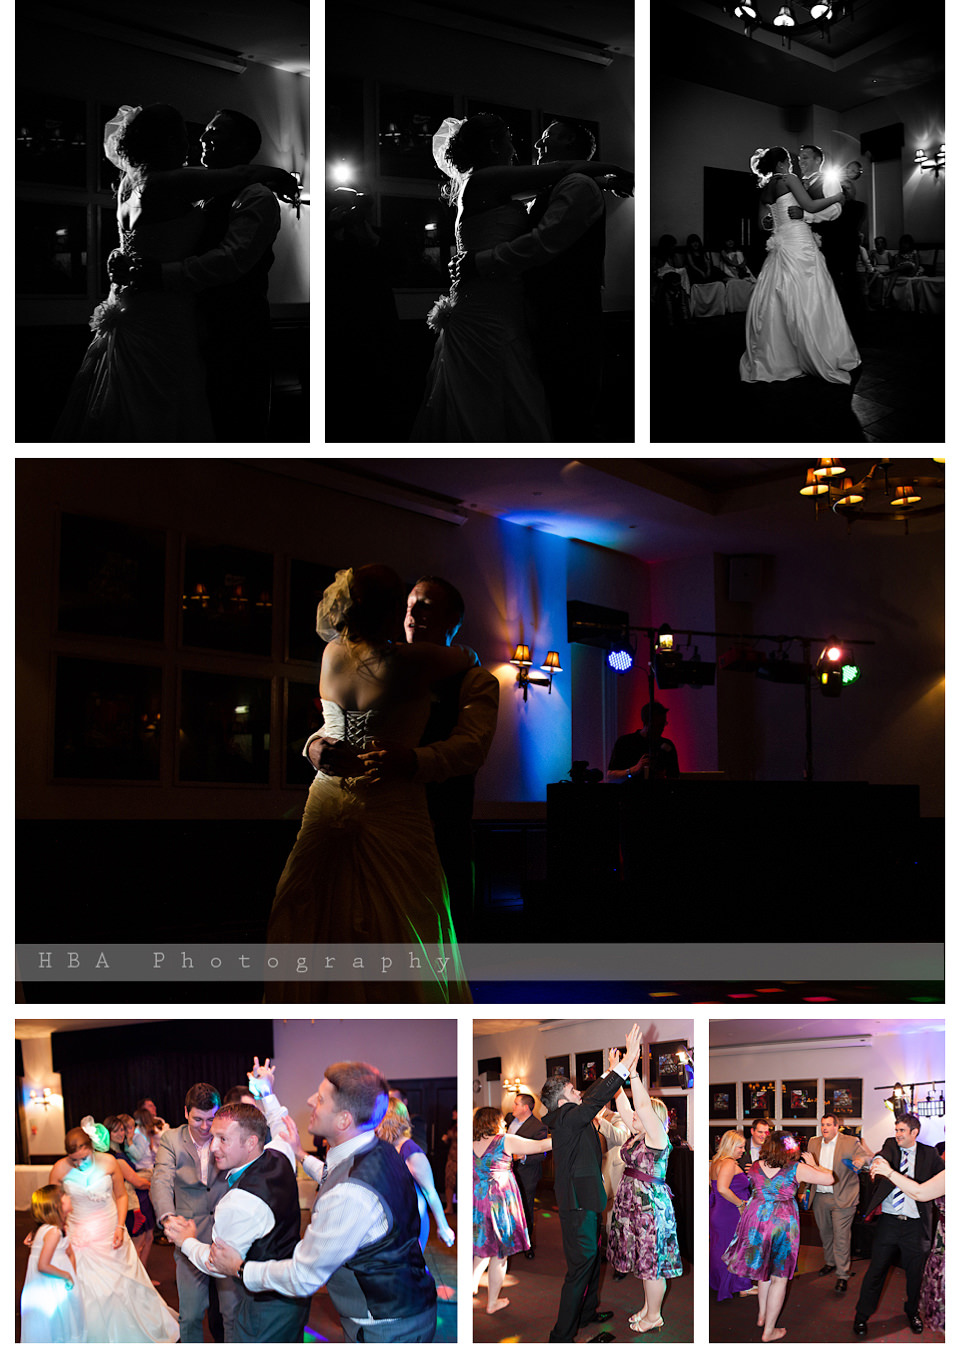 The wedding of Sam & Alan at New Place, Southampton. By contemporary photographers HBA Photography. The evening reception